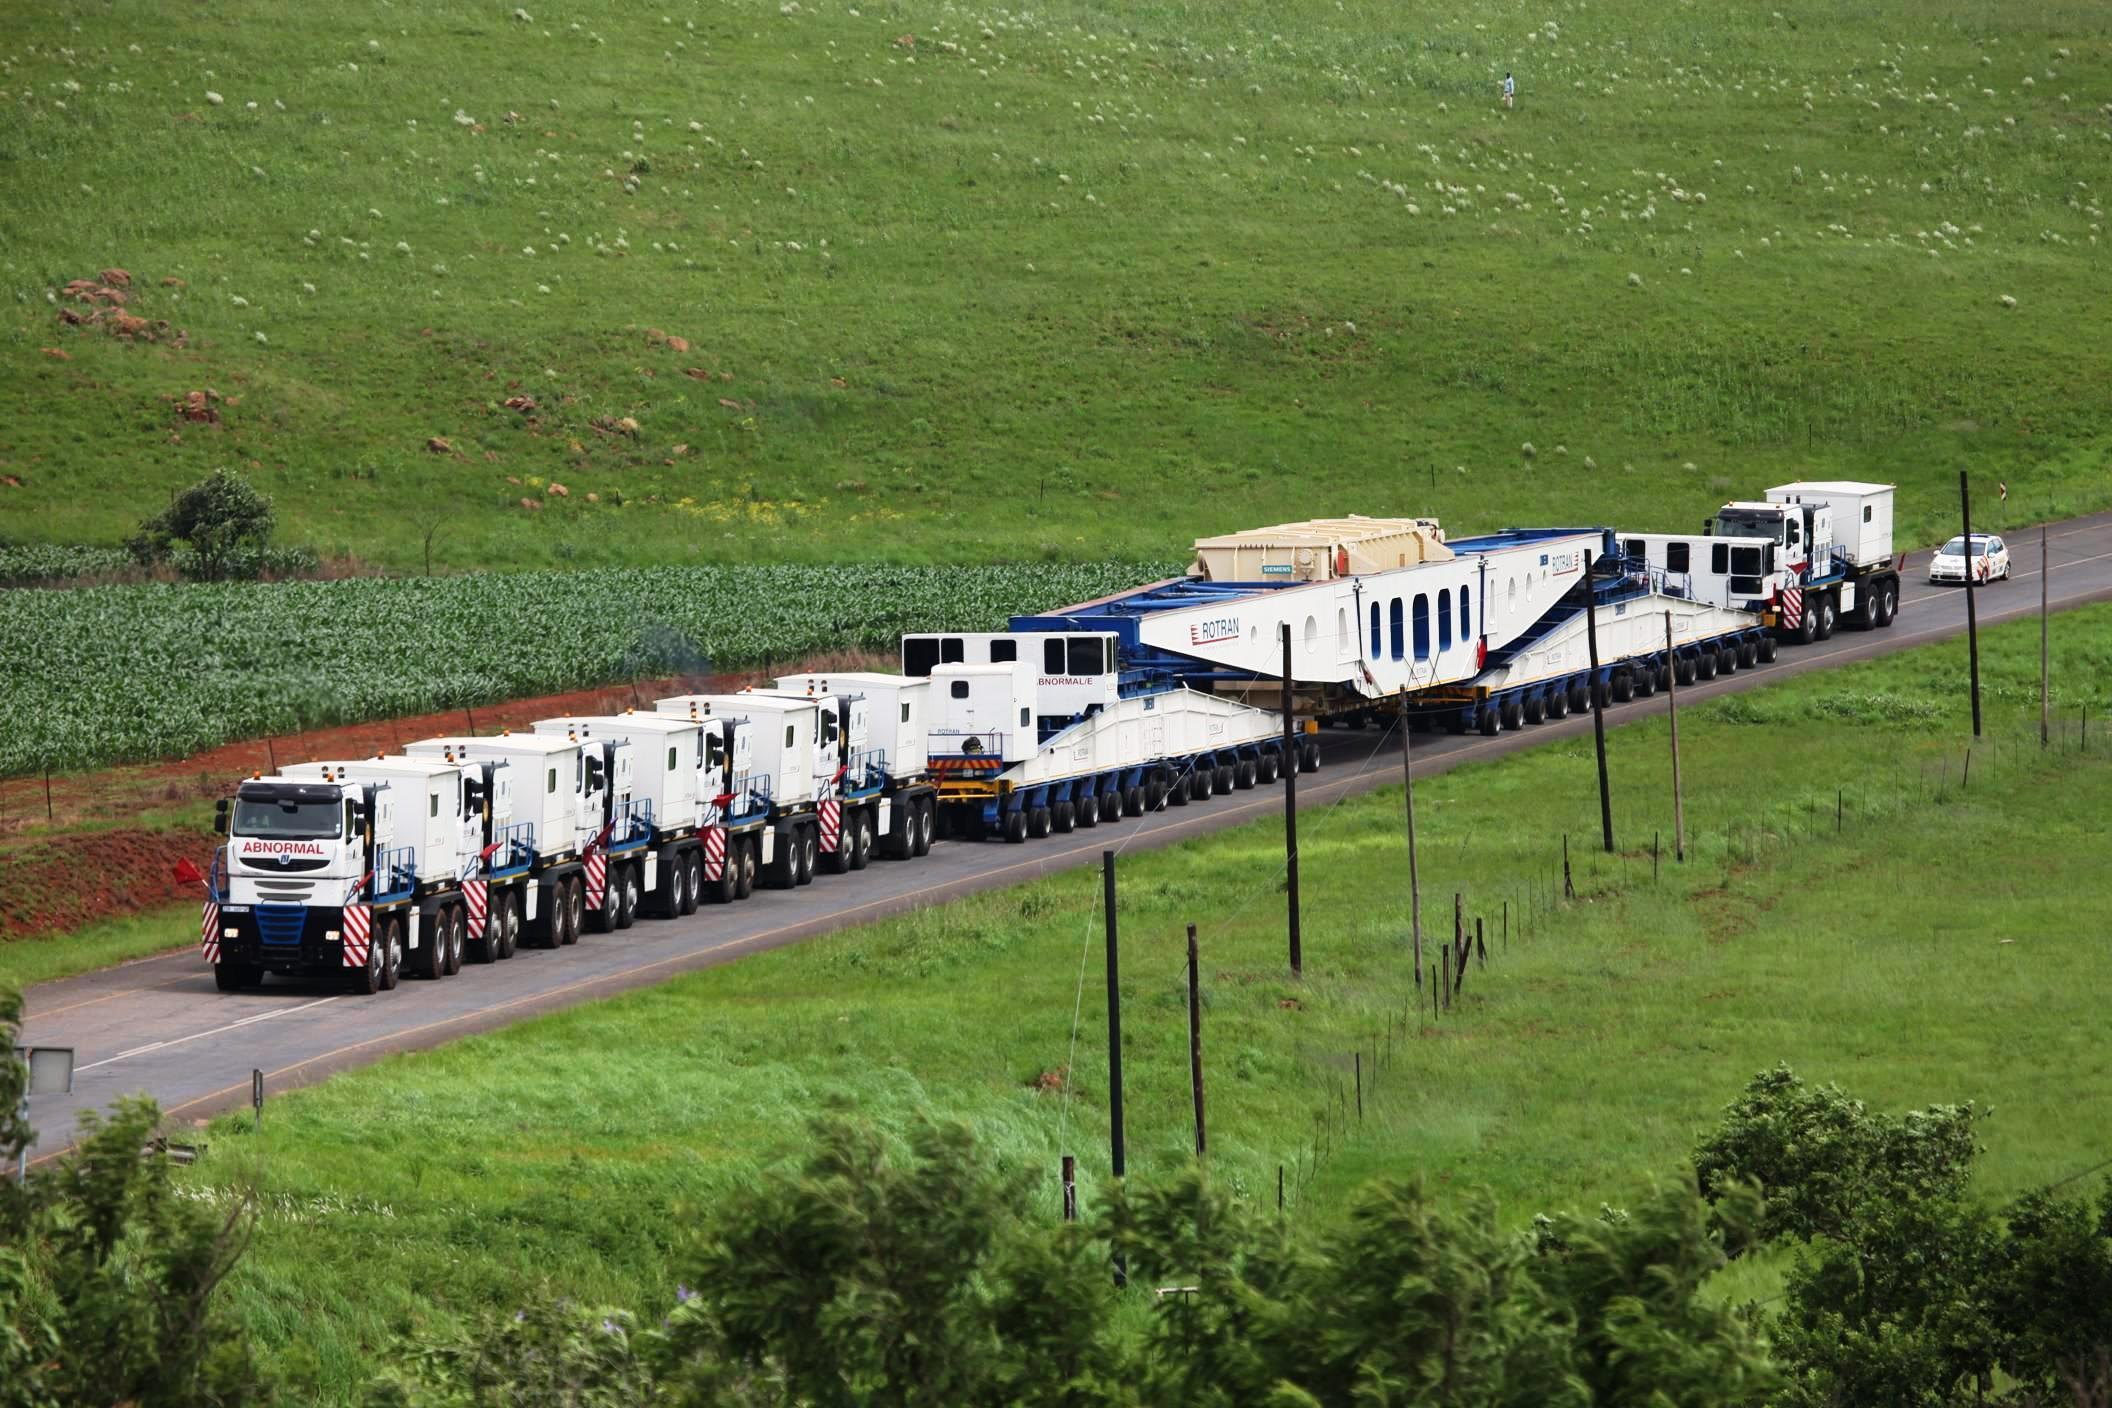 trucks Road train vehicles HD Wallpaper